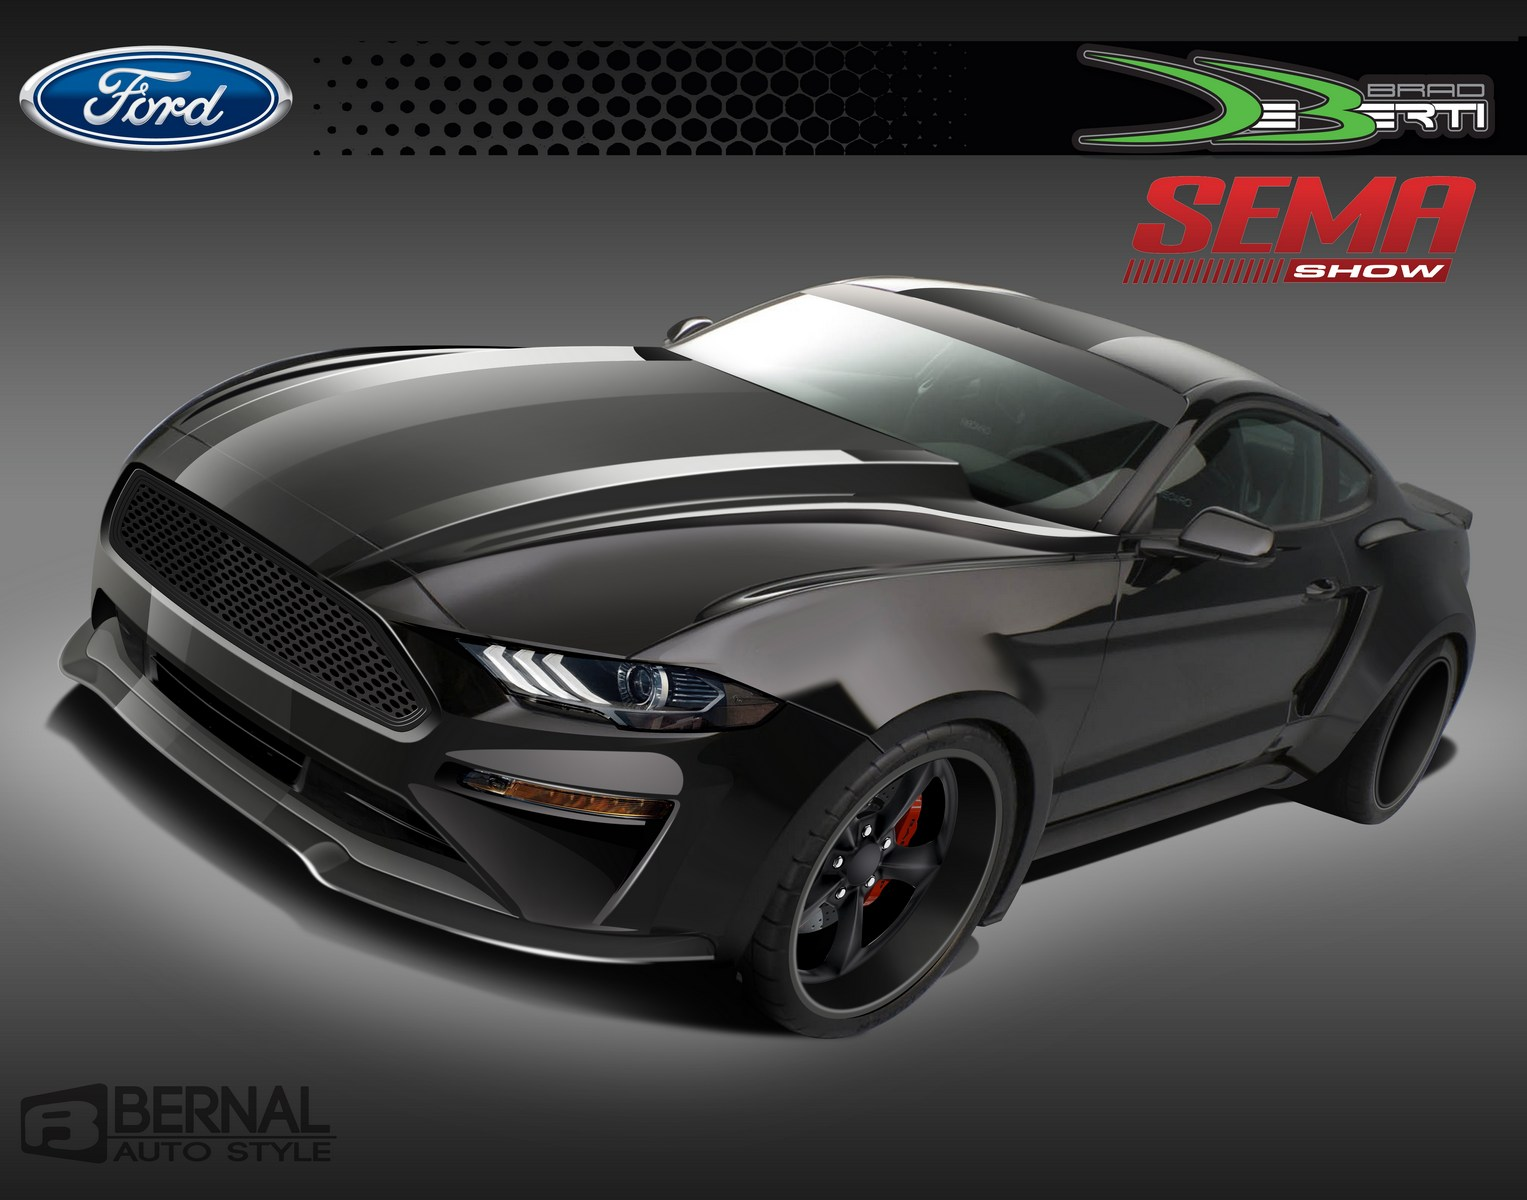 This DeBerti Design Mustang was designed by professional racer Brad Deberti, who brings a new level of modern muscle to a 2018 Ford Mustang GT outfitted with a Roush Supercharger. The body was widened to fit Mickey Thompson 18-inch wide rear tires. The hood was specially designed to tie in both old and new muscle. Looking at this Mustang from any direction brings out a feeling of what it would be like to go fast in style.